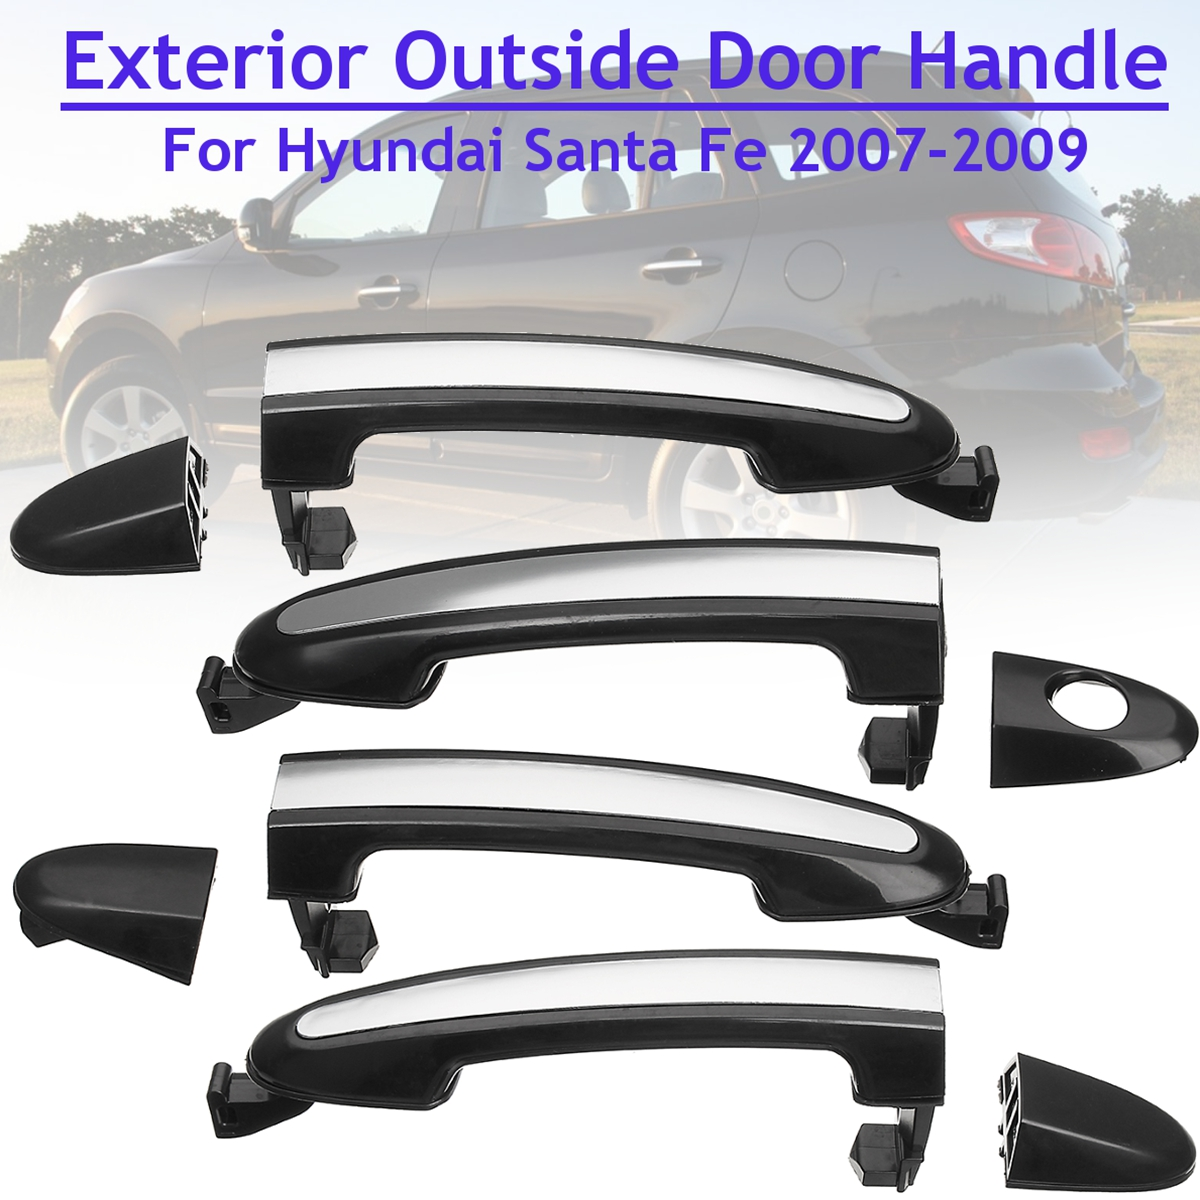 New ABS Chrome Front/Rear Left/Right Exterior Door Handle Cover trim For <font><b>Hyundai</b></font> <font><b>Santa</b></font> <font><b>Fe</b></font> 2007 2008 2009 <font><b>2010</b></font> 2011 2012 image